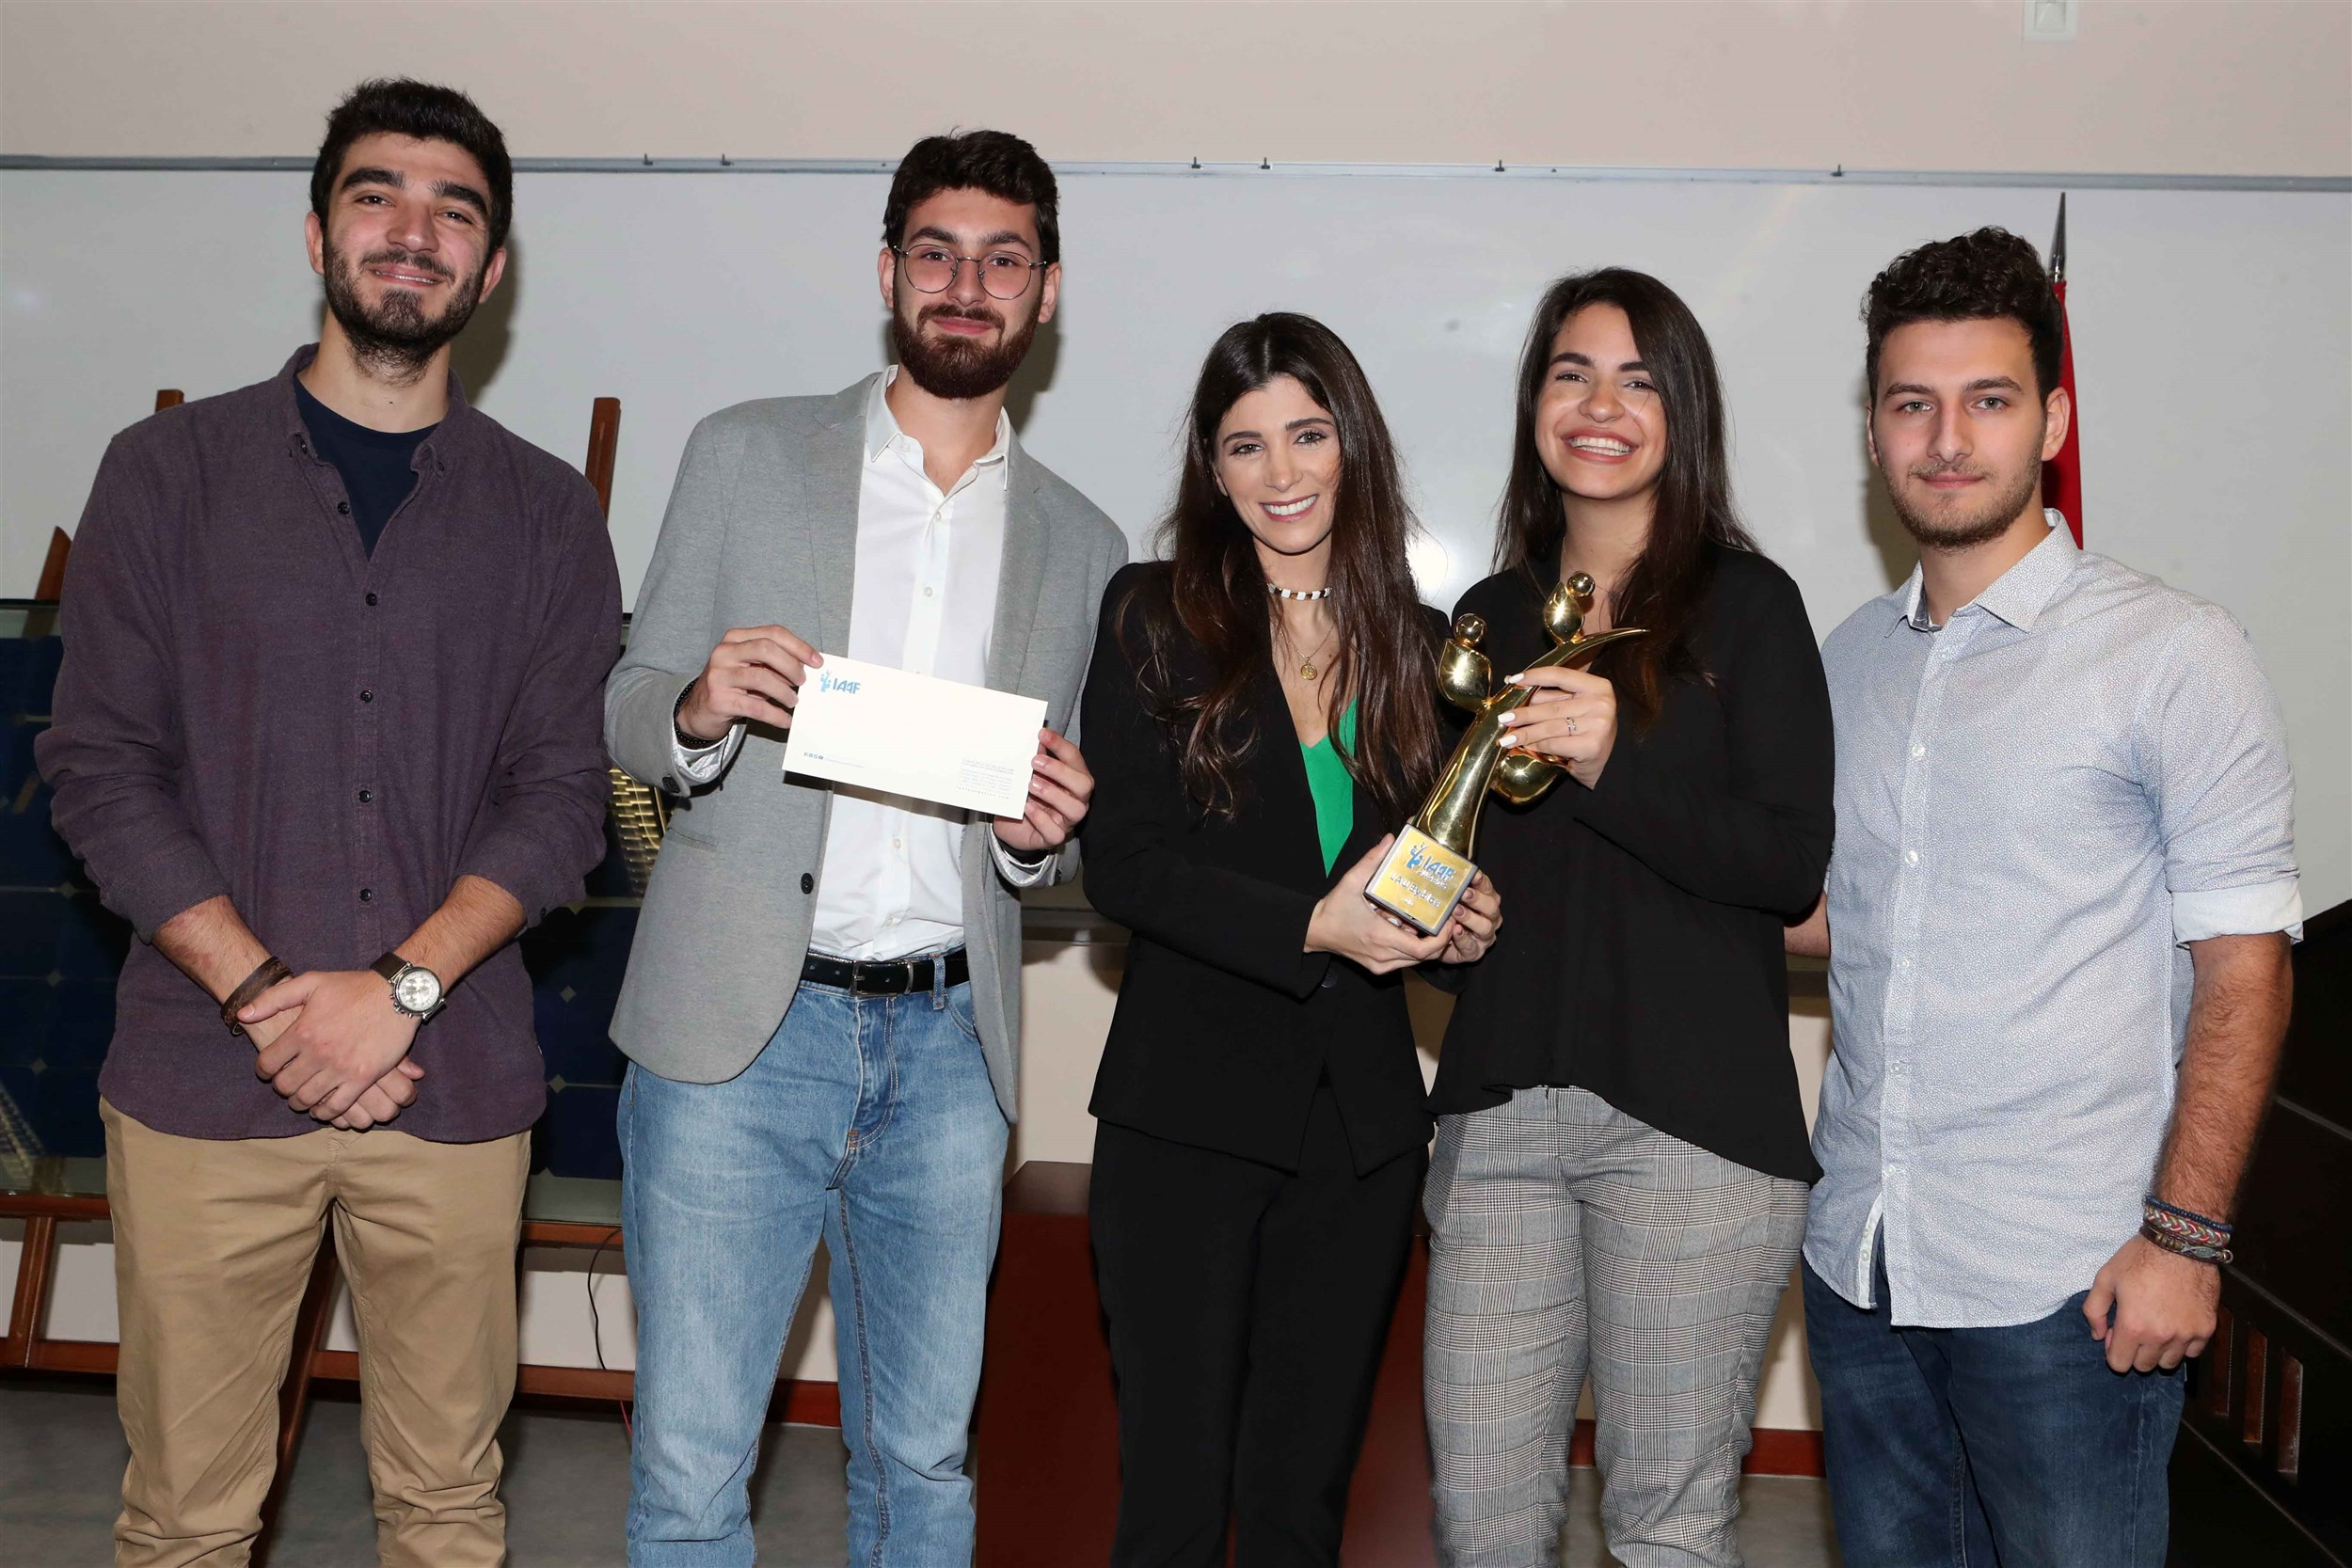 """the winners of the byblos campus iaaf awards photo with mrs. inas al jarmakani after receiving their monetary prize for their project """"findmydoc"""""""